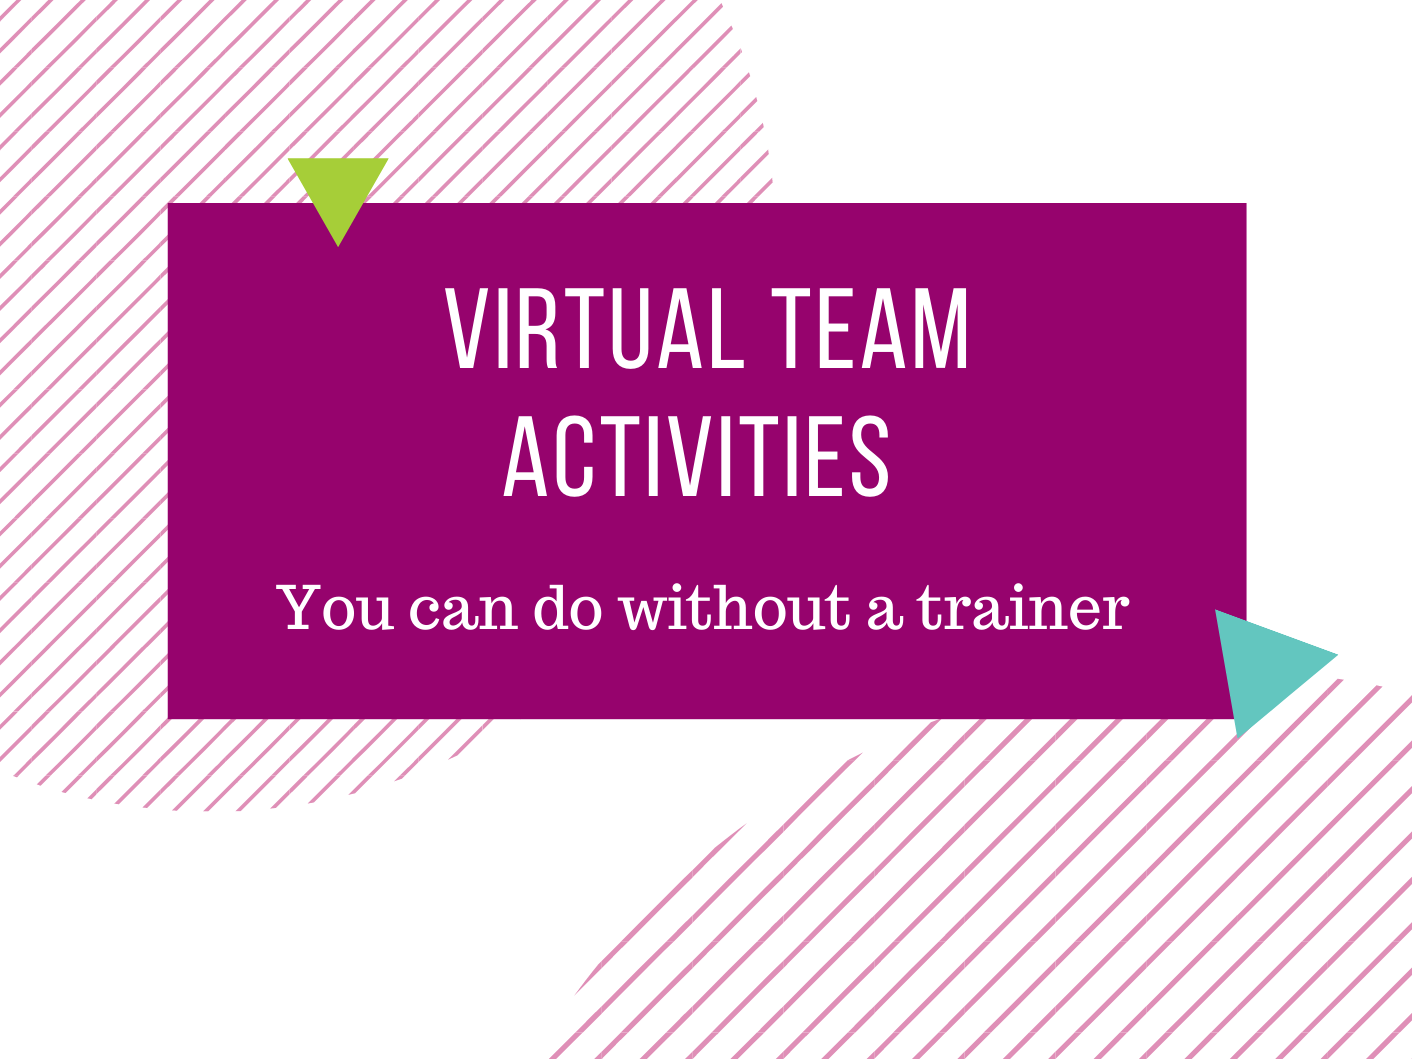 Virtual team activities ebook Azimut (4-3)